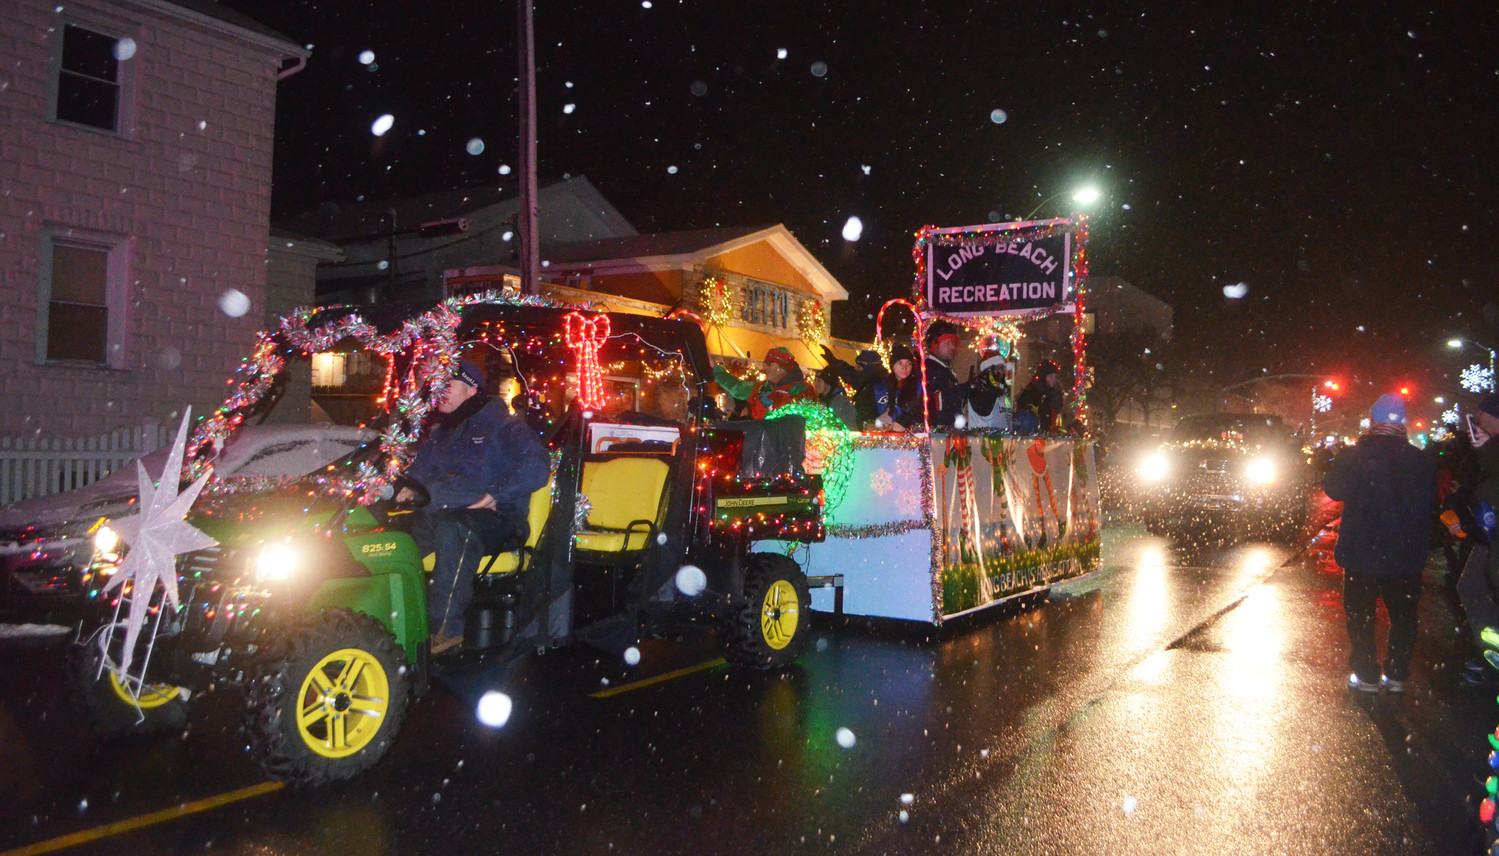 The Parks and Recreation Department showed off their festive float decked in holiday lights and banners.